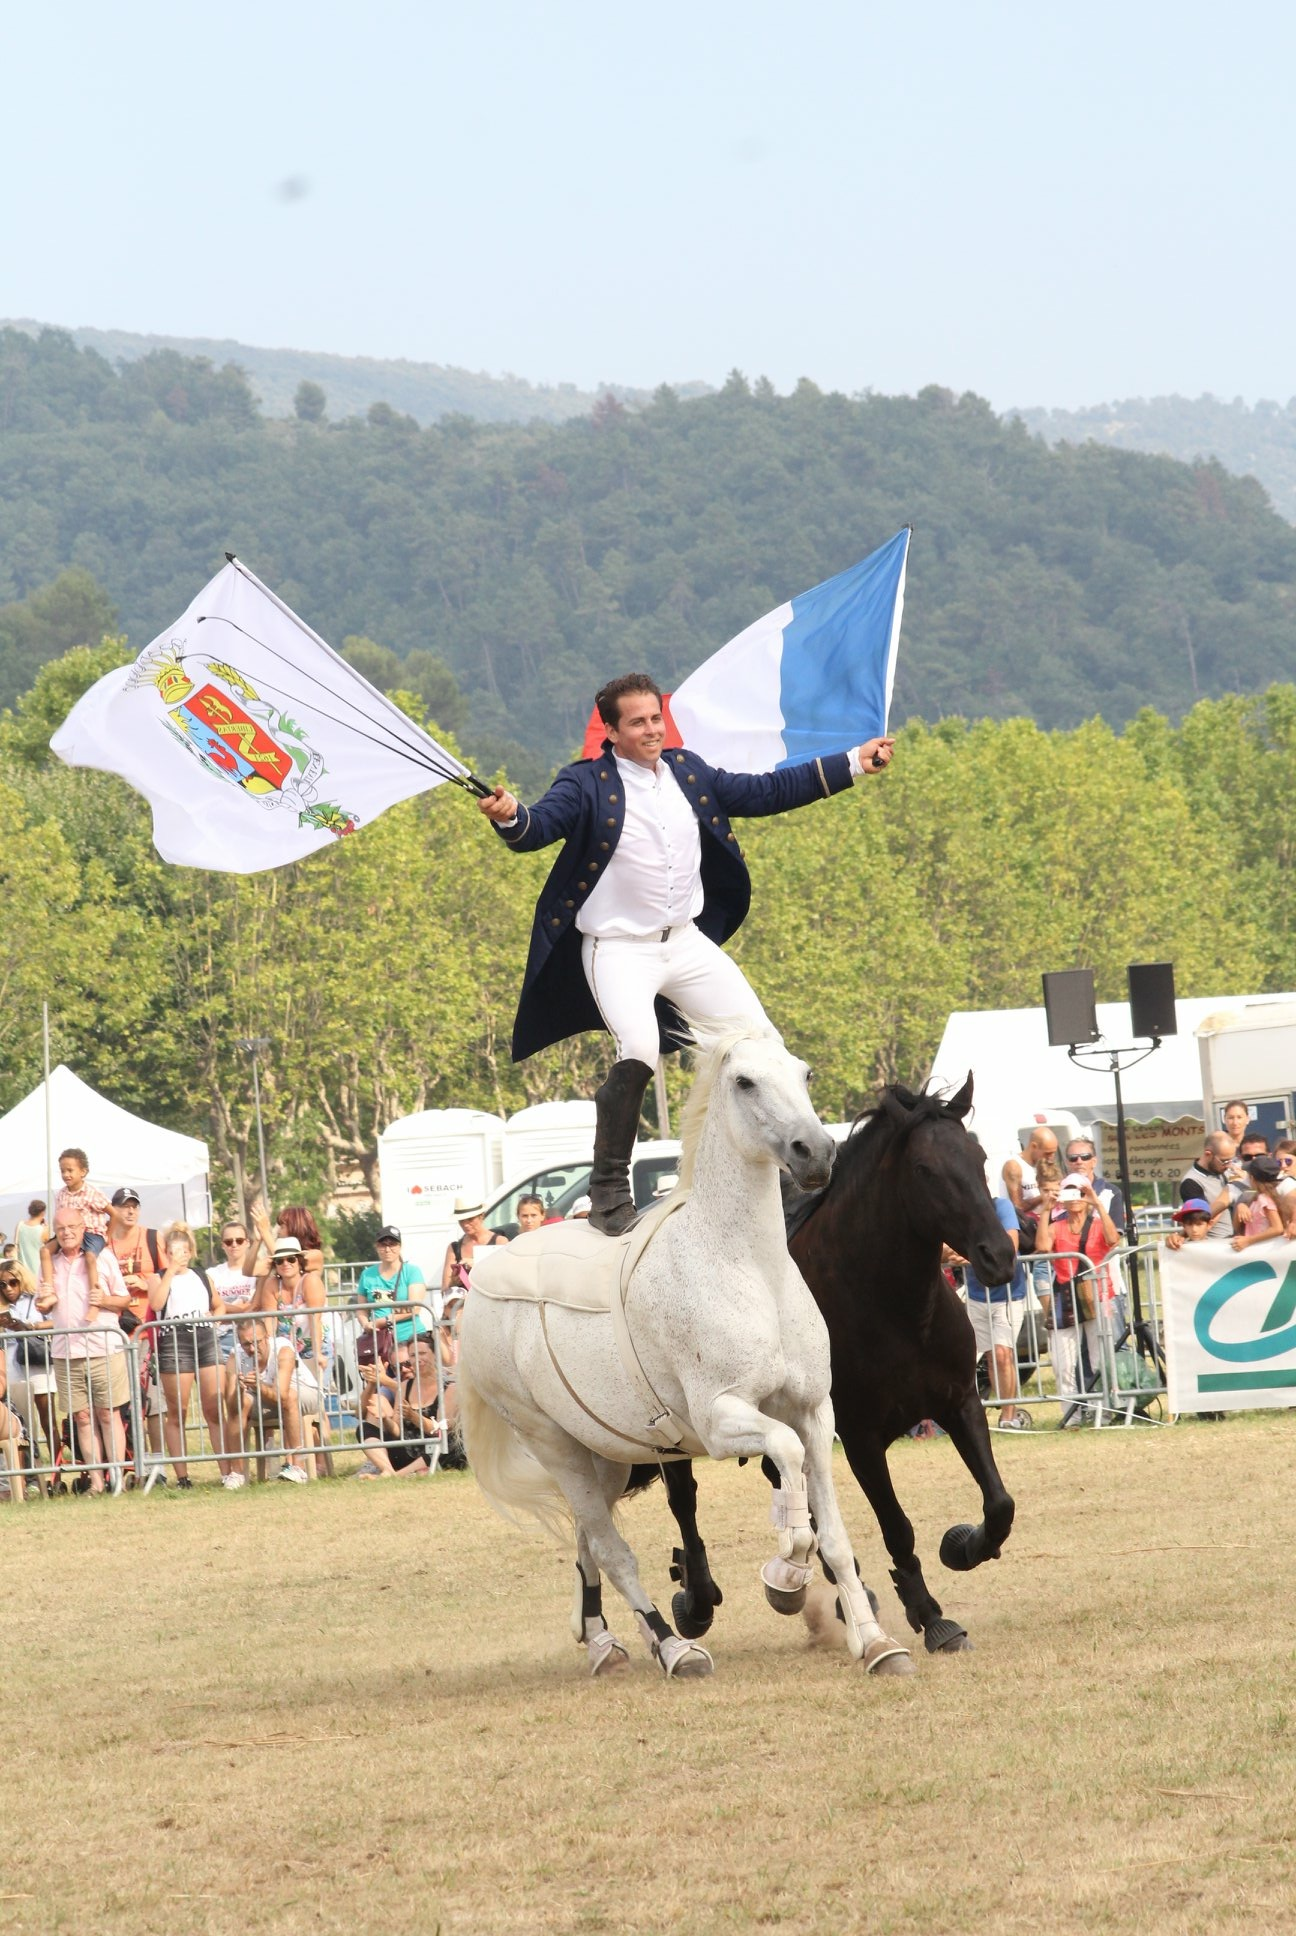 aucop-evenement-fete du cheval-levens-sonorisation-eclairage-location-materiel-audiovisuel-nice-paris-marseille